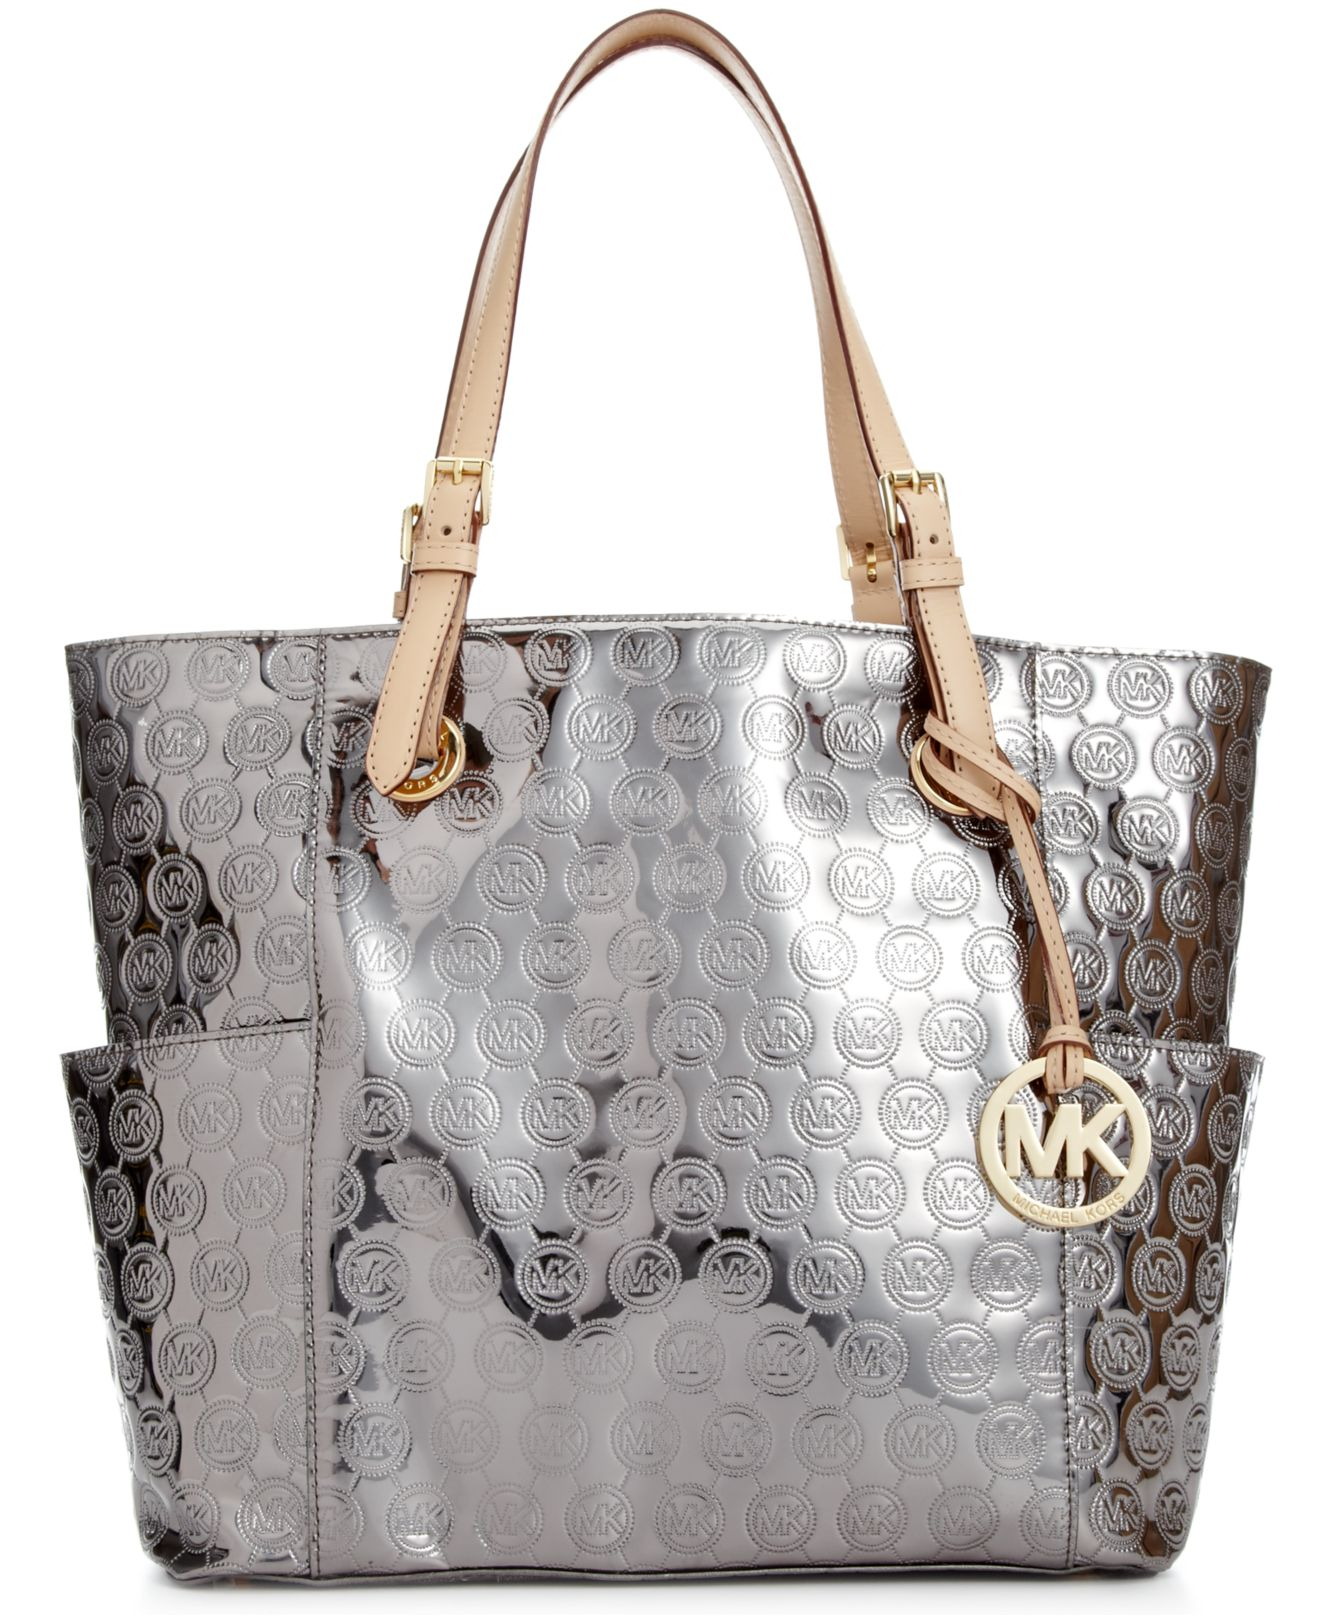 69073868d michael kors bag nickel